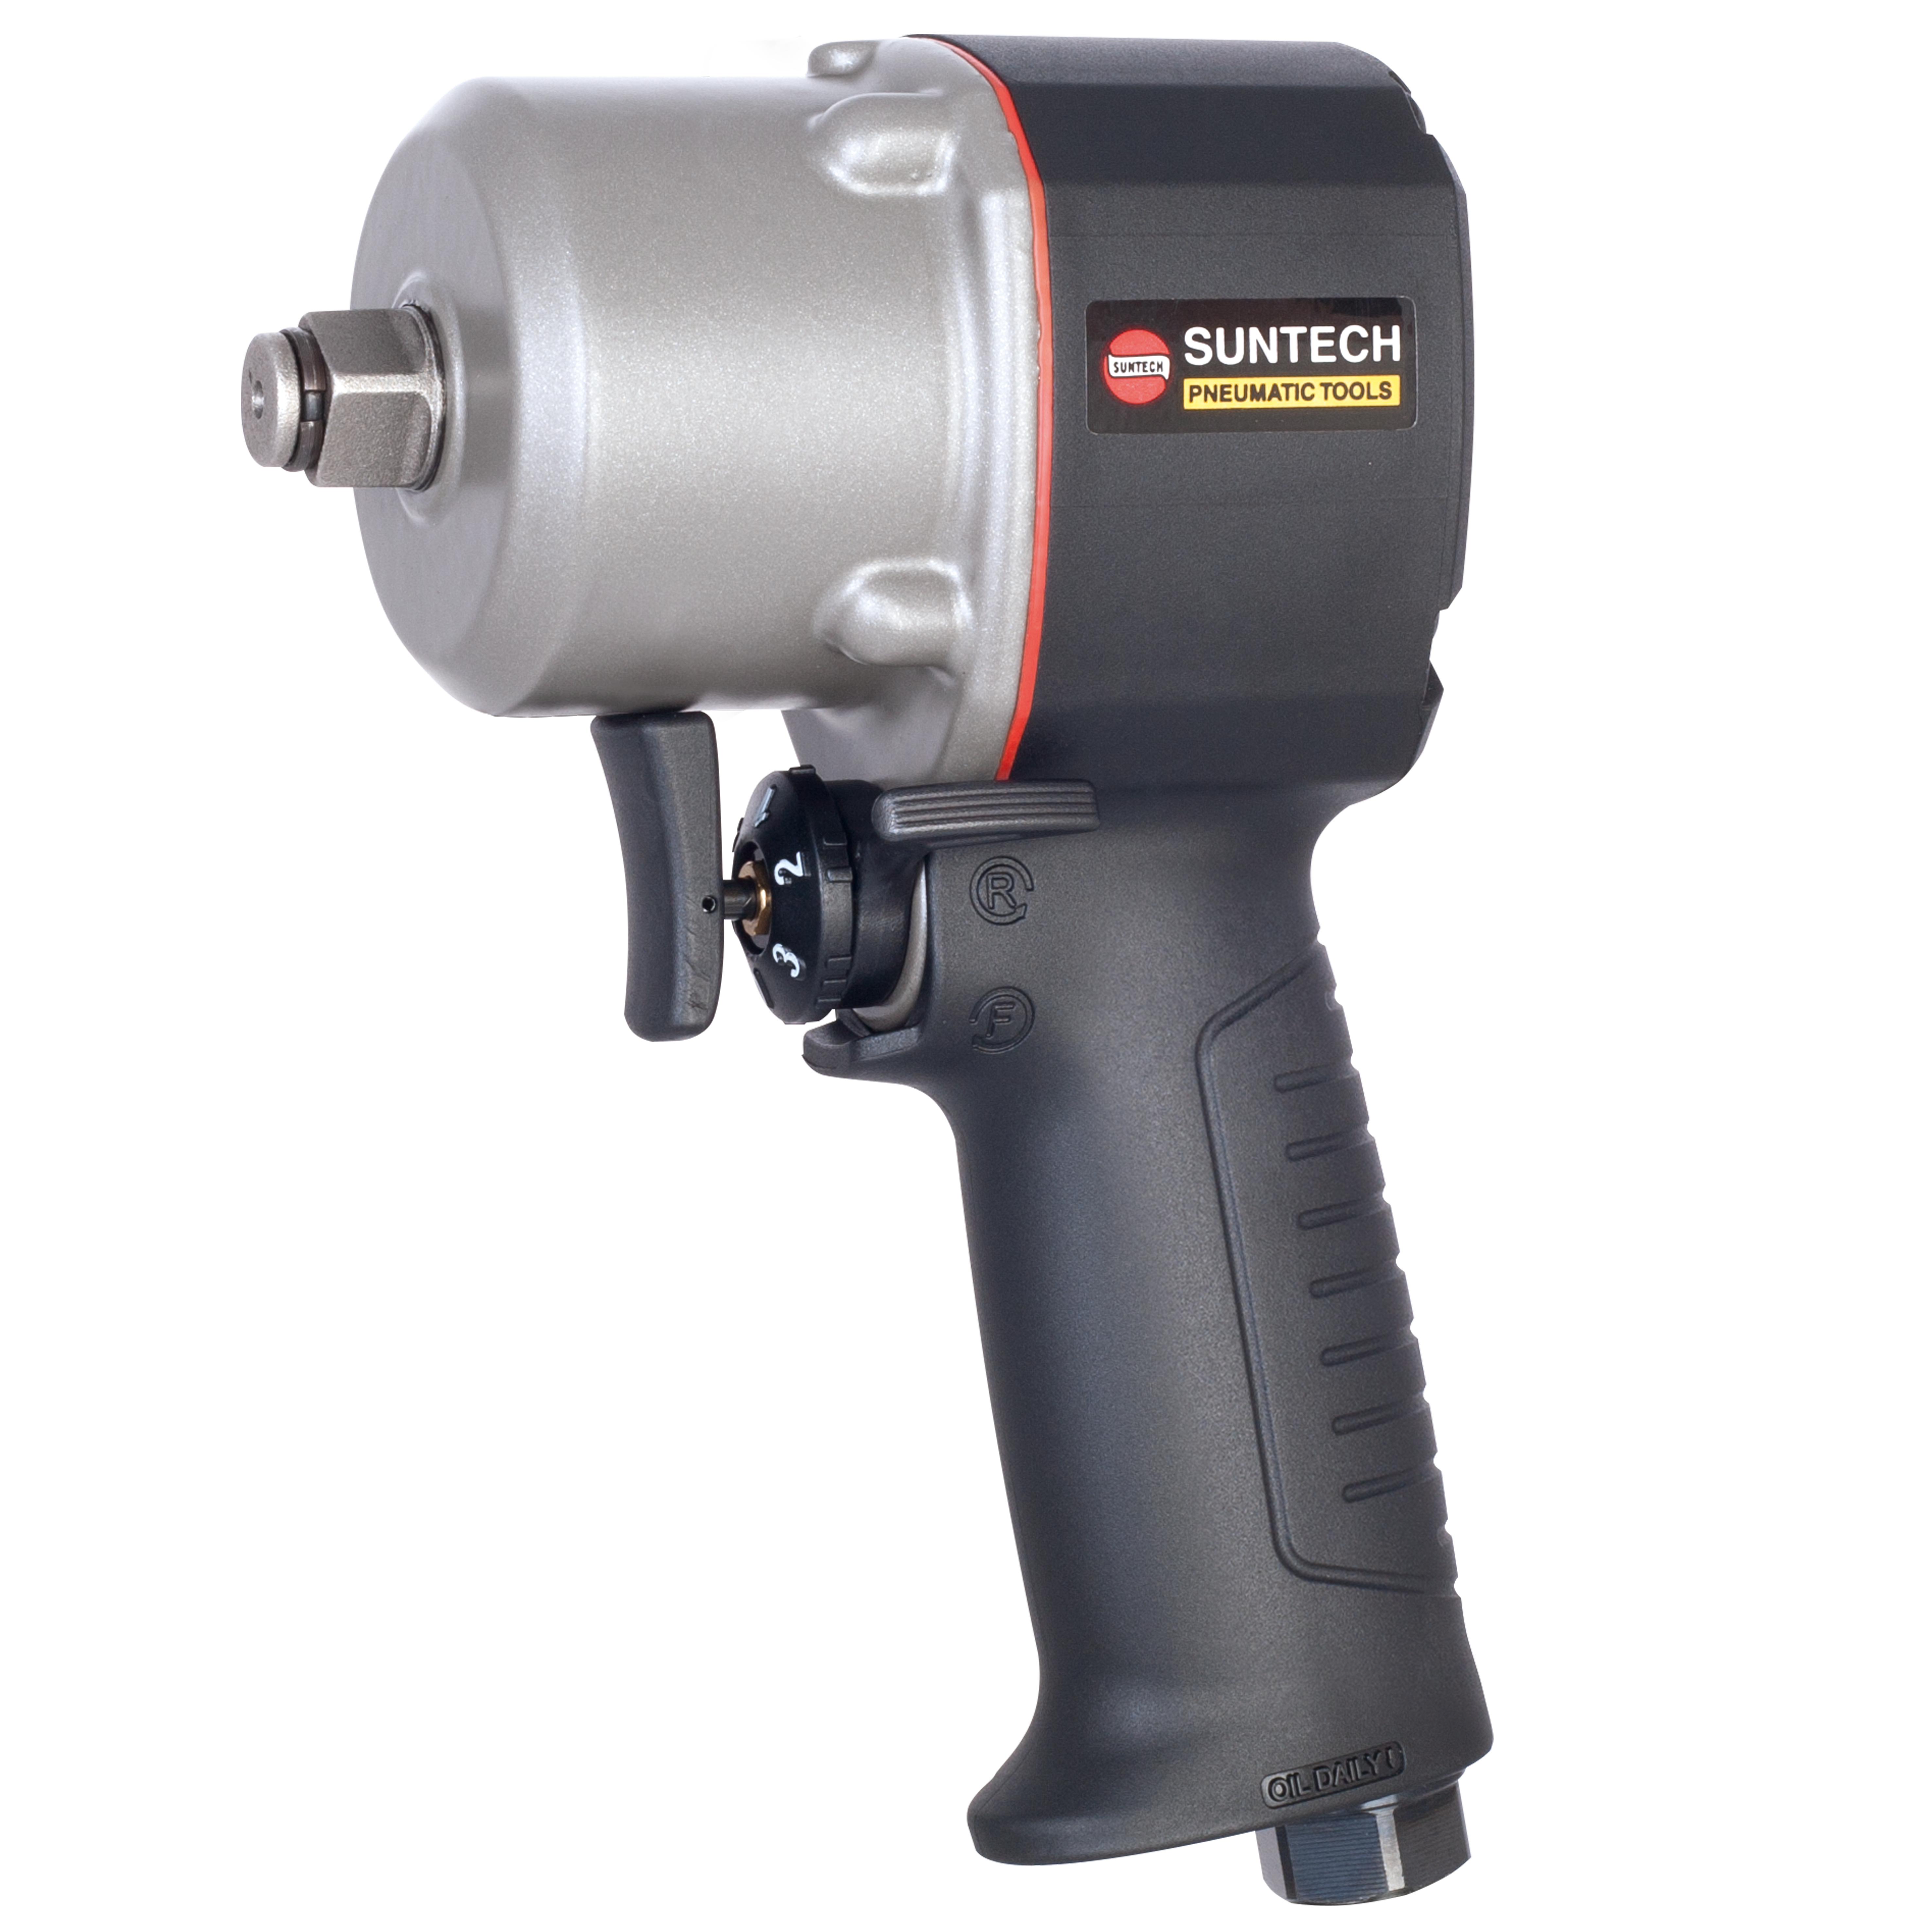 Drill clipart impact wrench. Sunmatch professional pneumatic tools